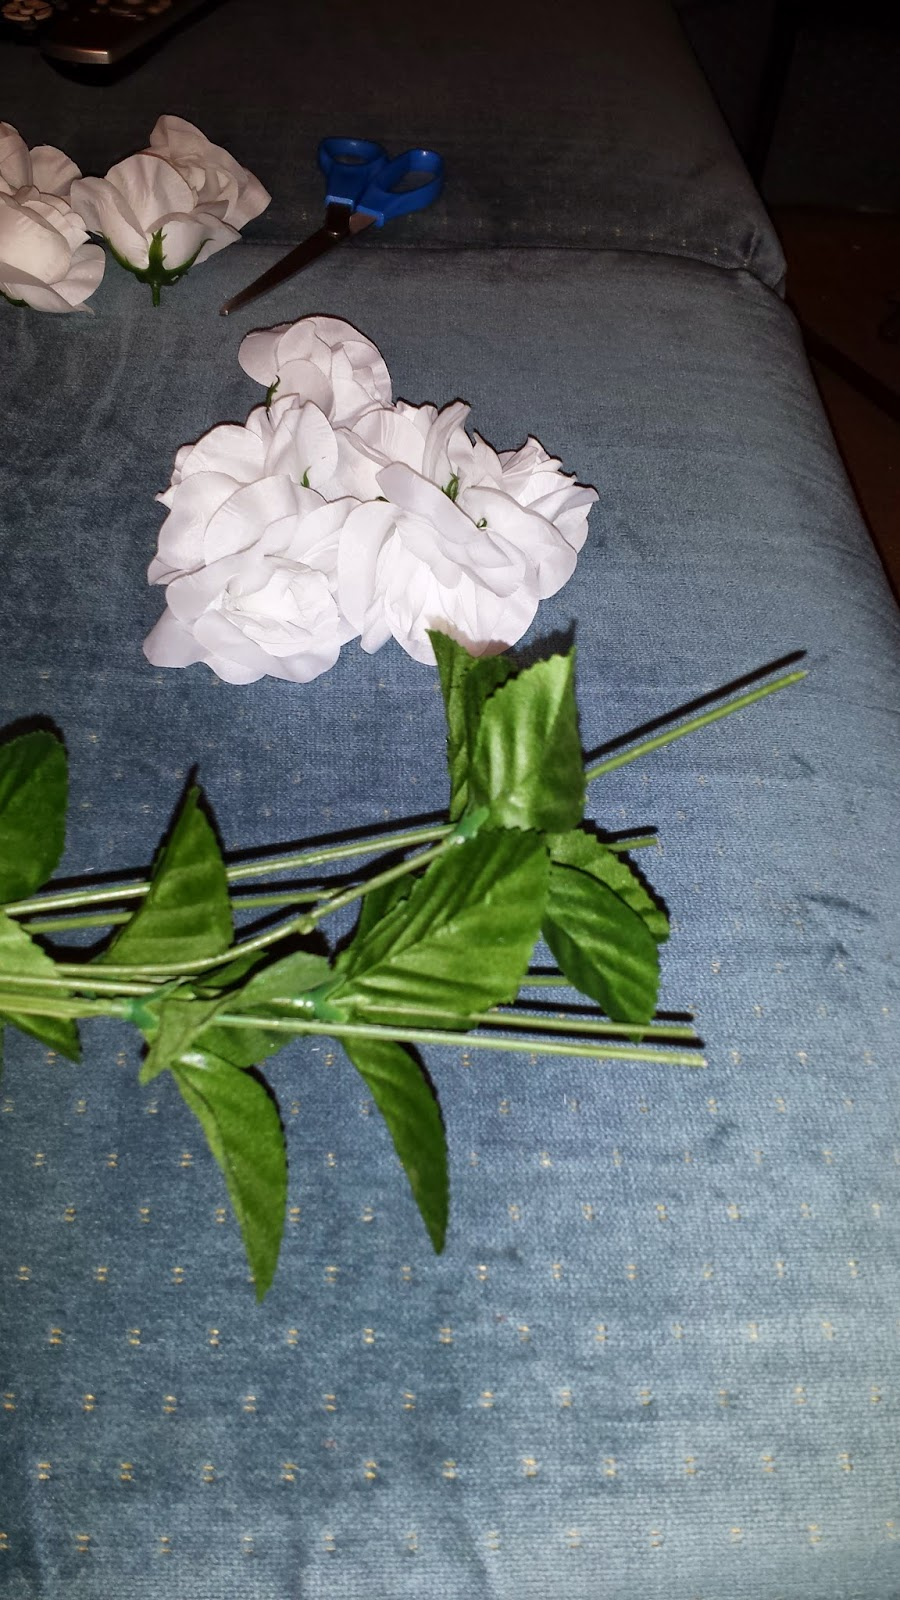 remove flowers from stems